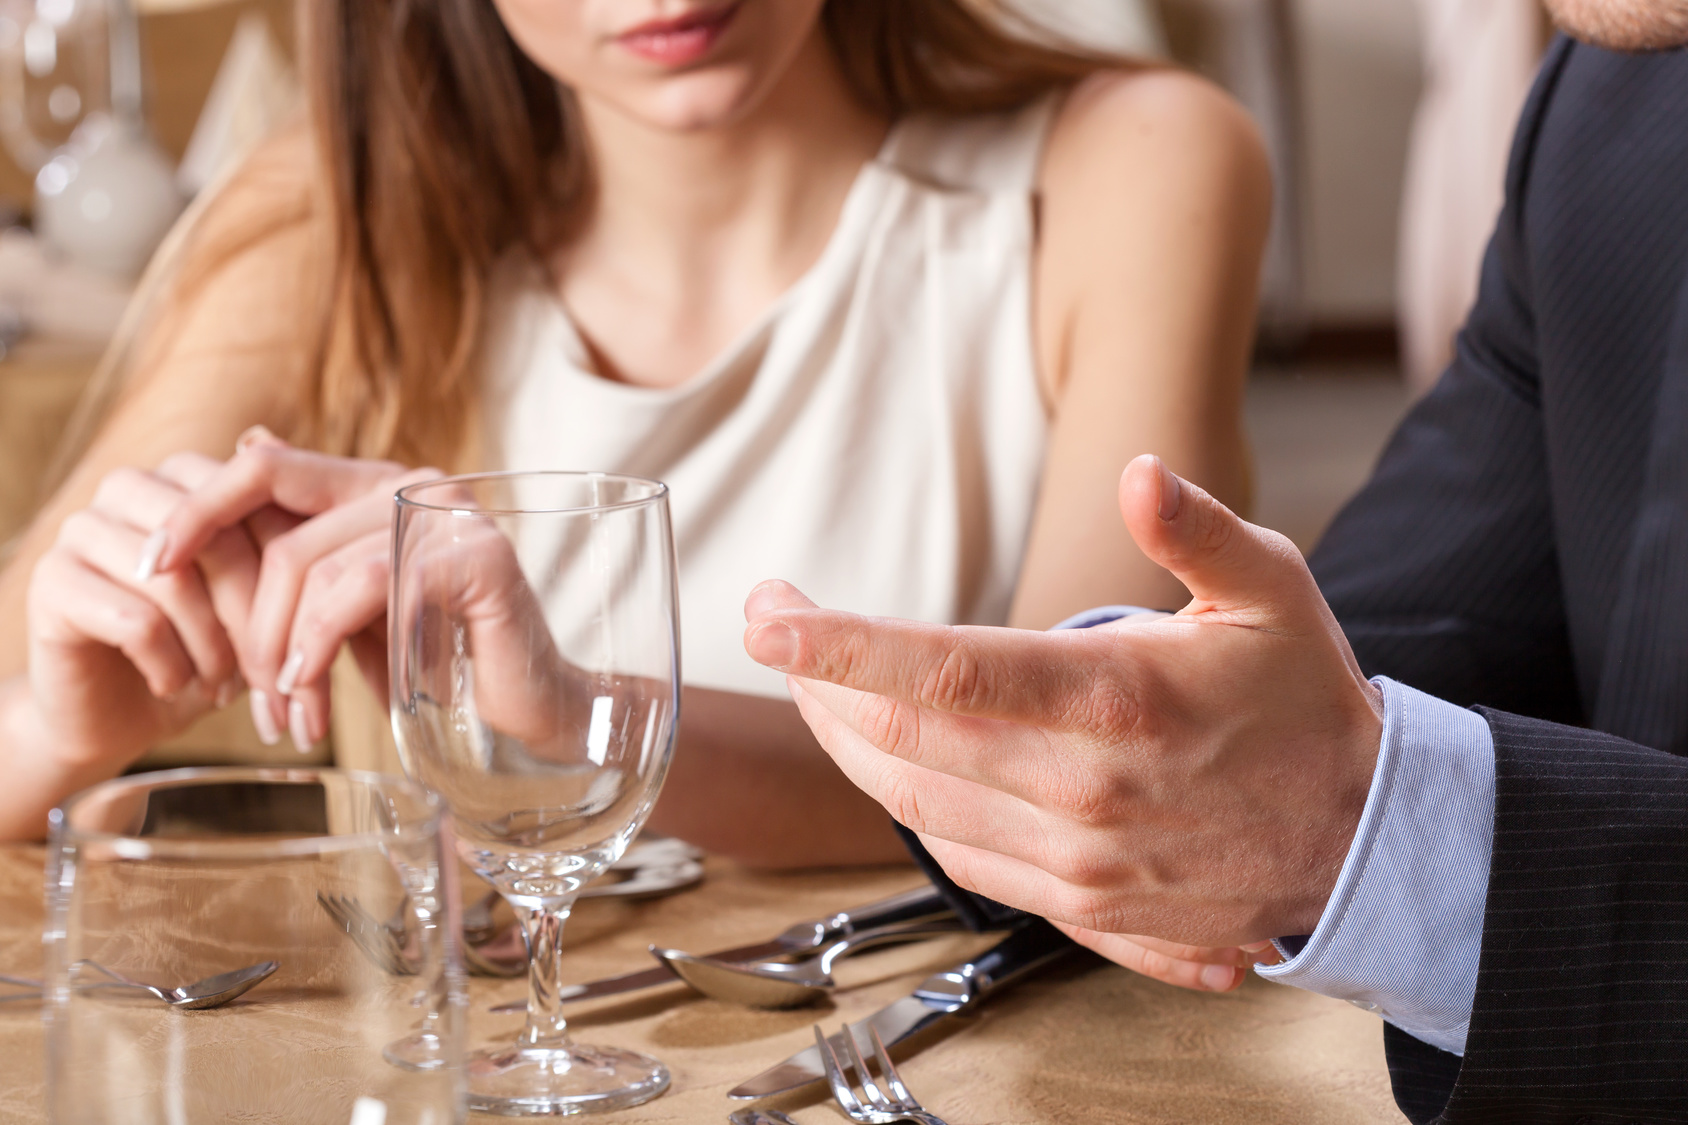 Couple dating on a dinner, closeup of a tableware